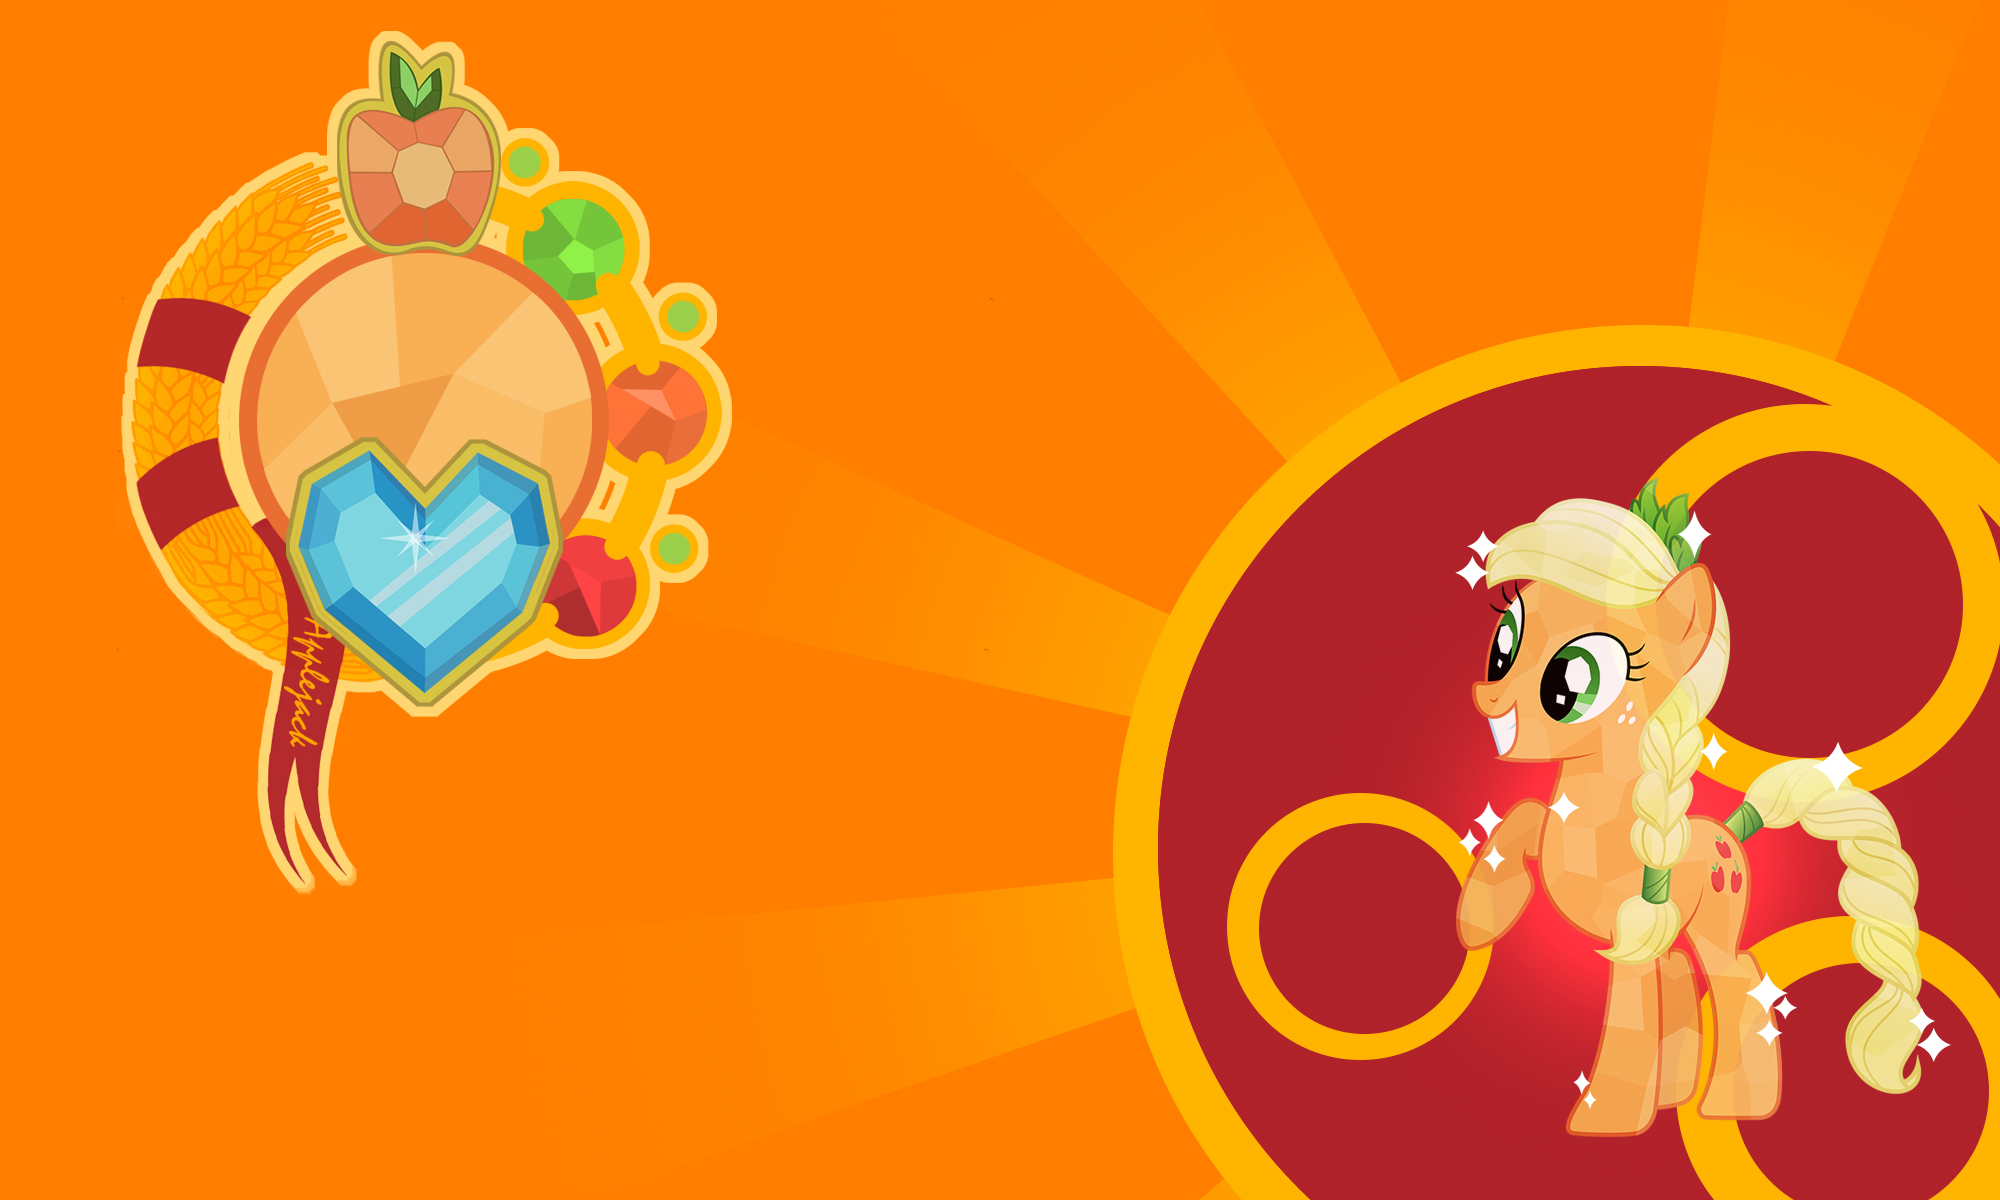 Christian Wallpaper Fall Welcome Download My Little Pony Applejack Wallpaper Gallery